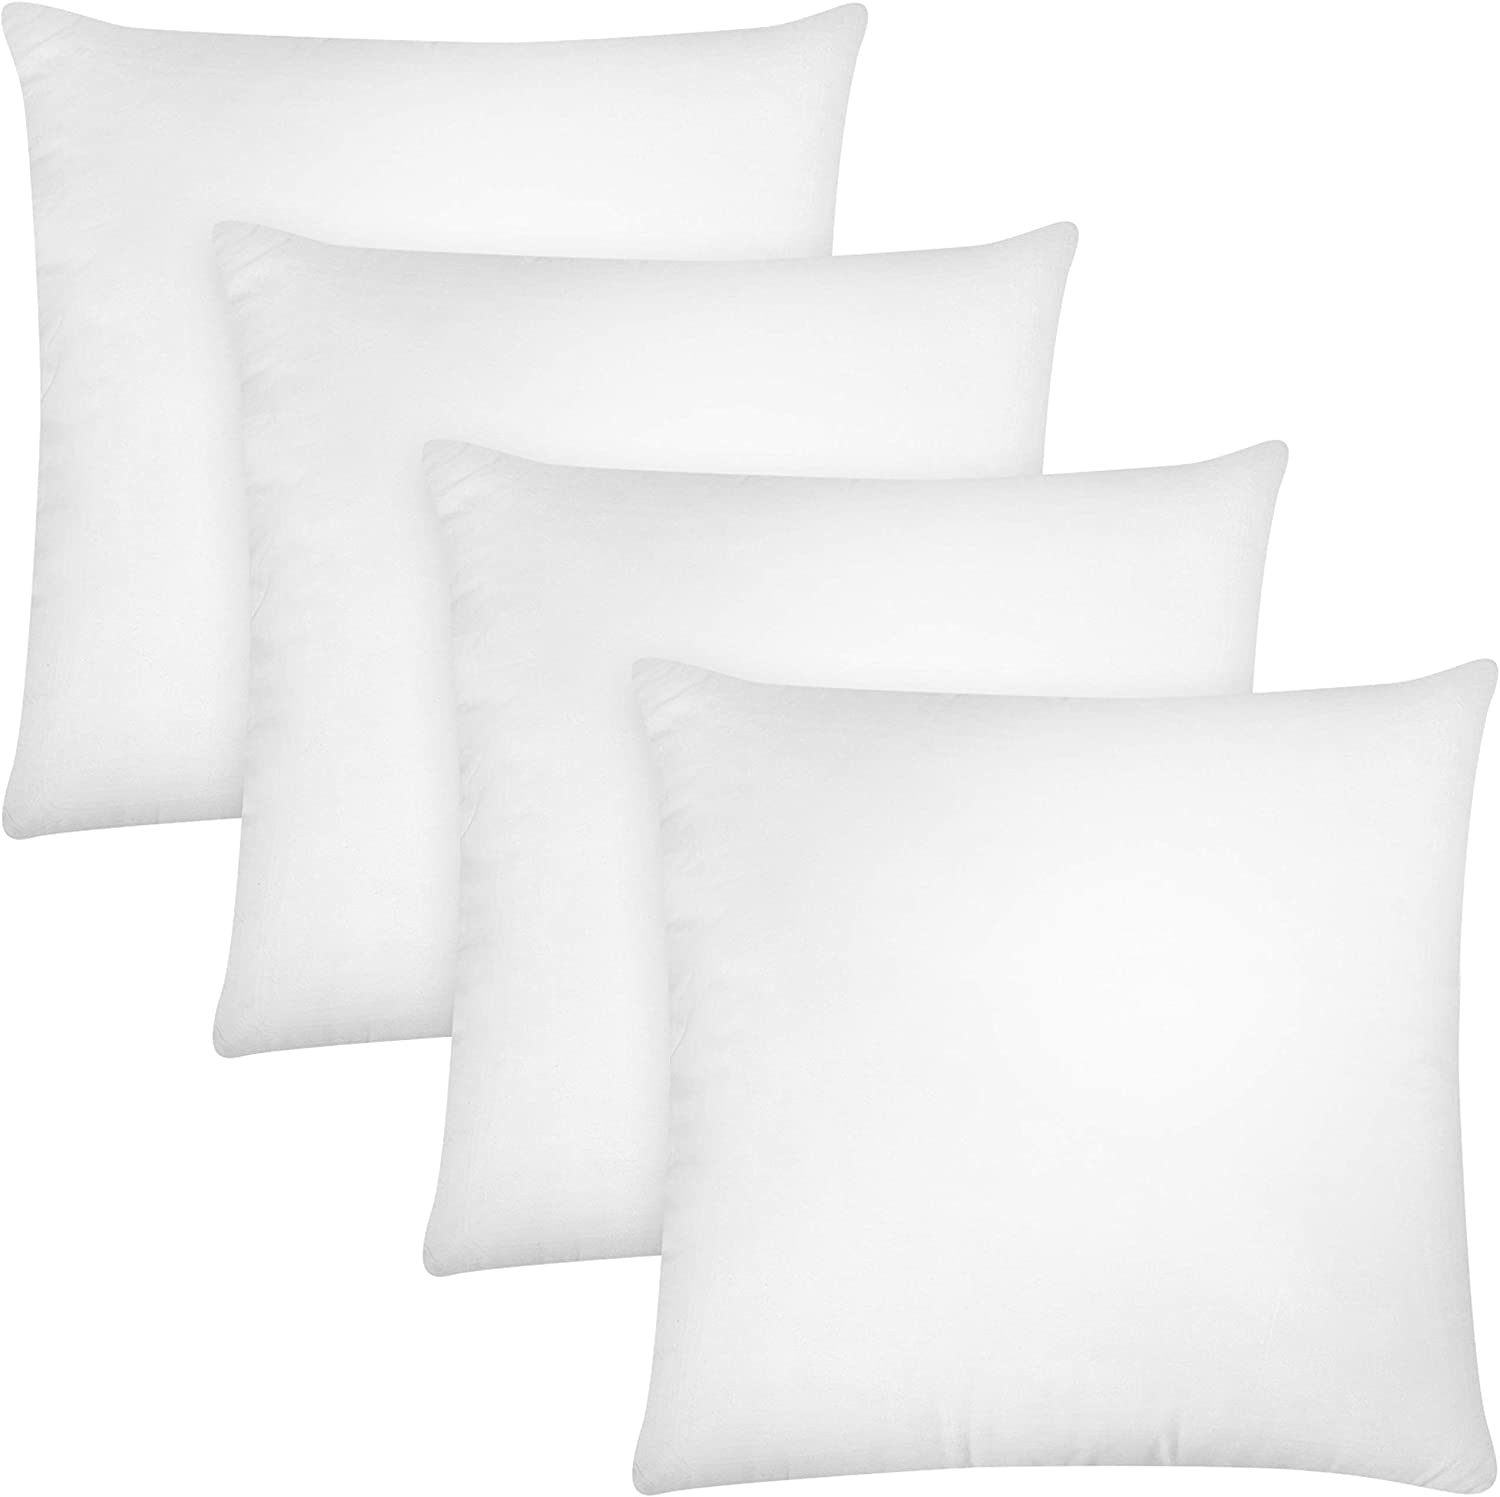 Indoor Decorative Pillows Utopia Bedding Throw Pillows Insert - 12 x 12 Inches Bed and Couch Pillows Pack of 4, White